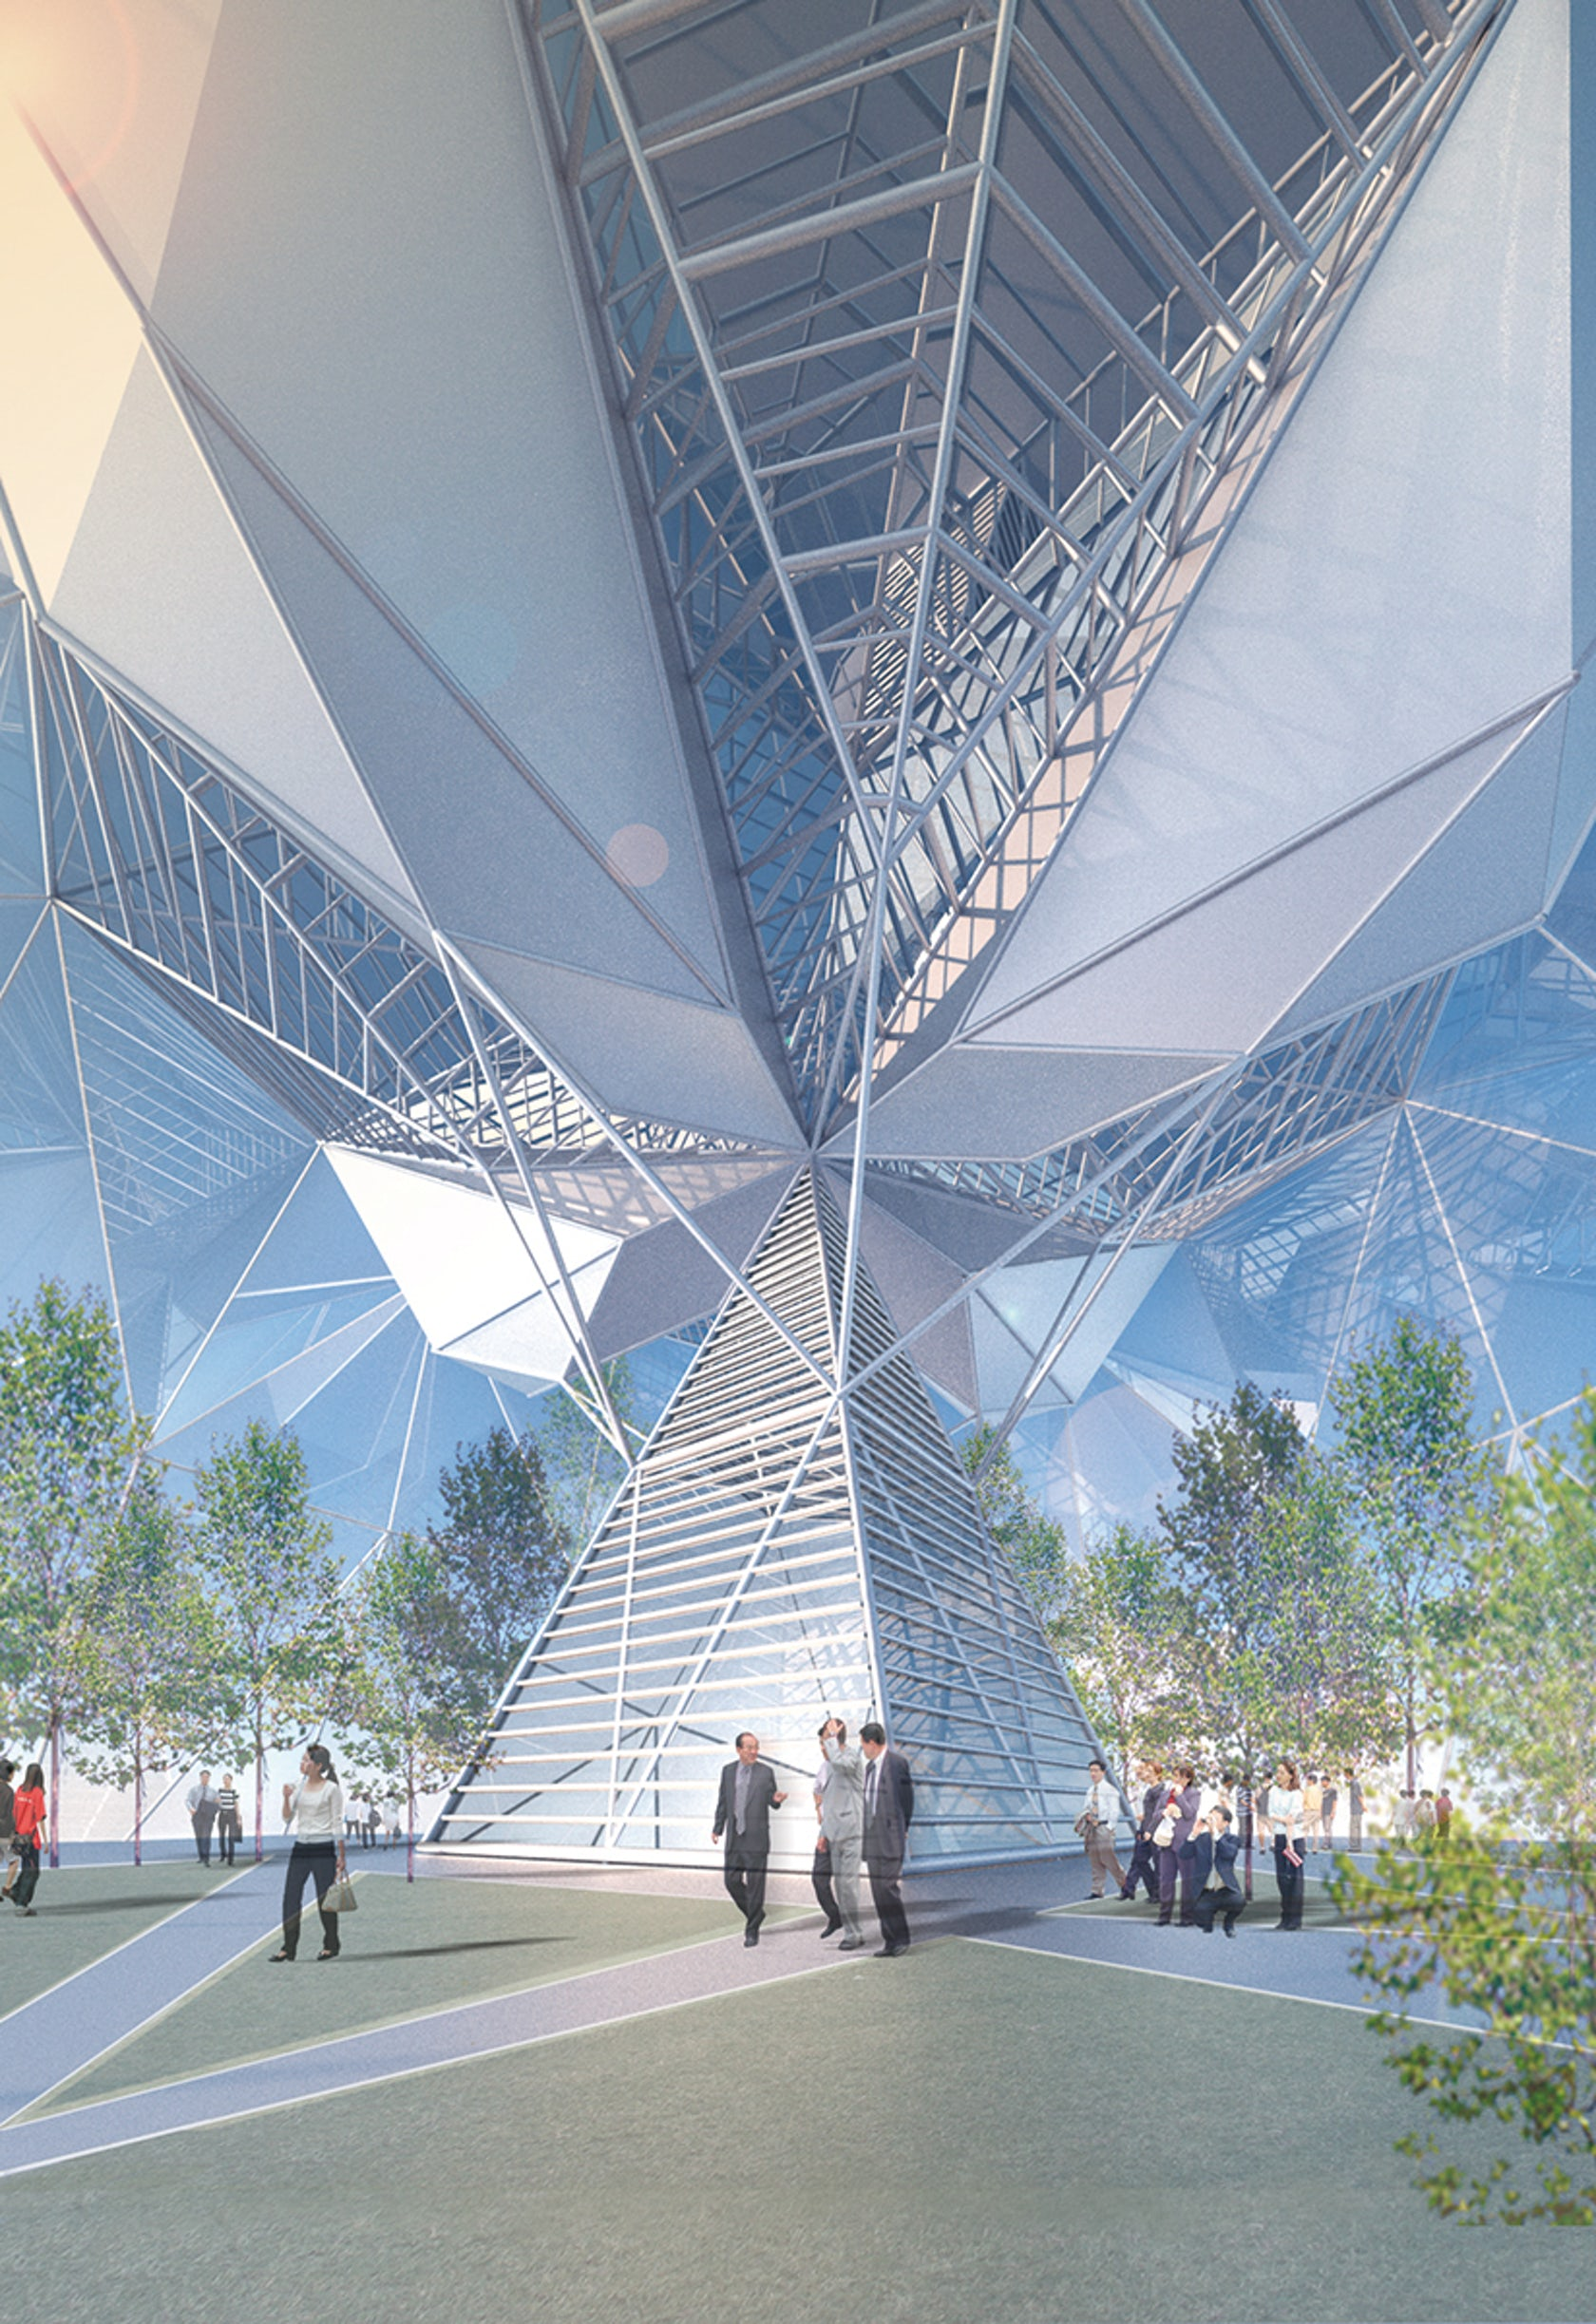 Chengdu greenland tower architizer for Architectural design problems